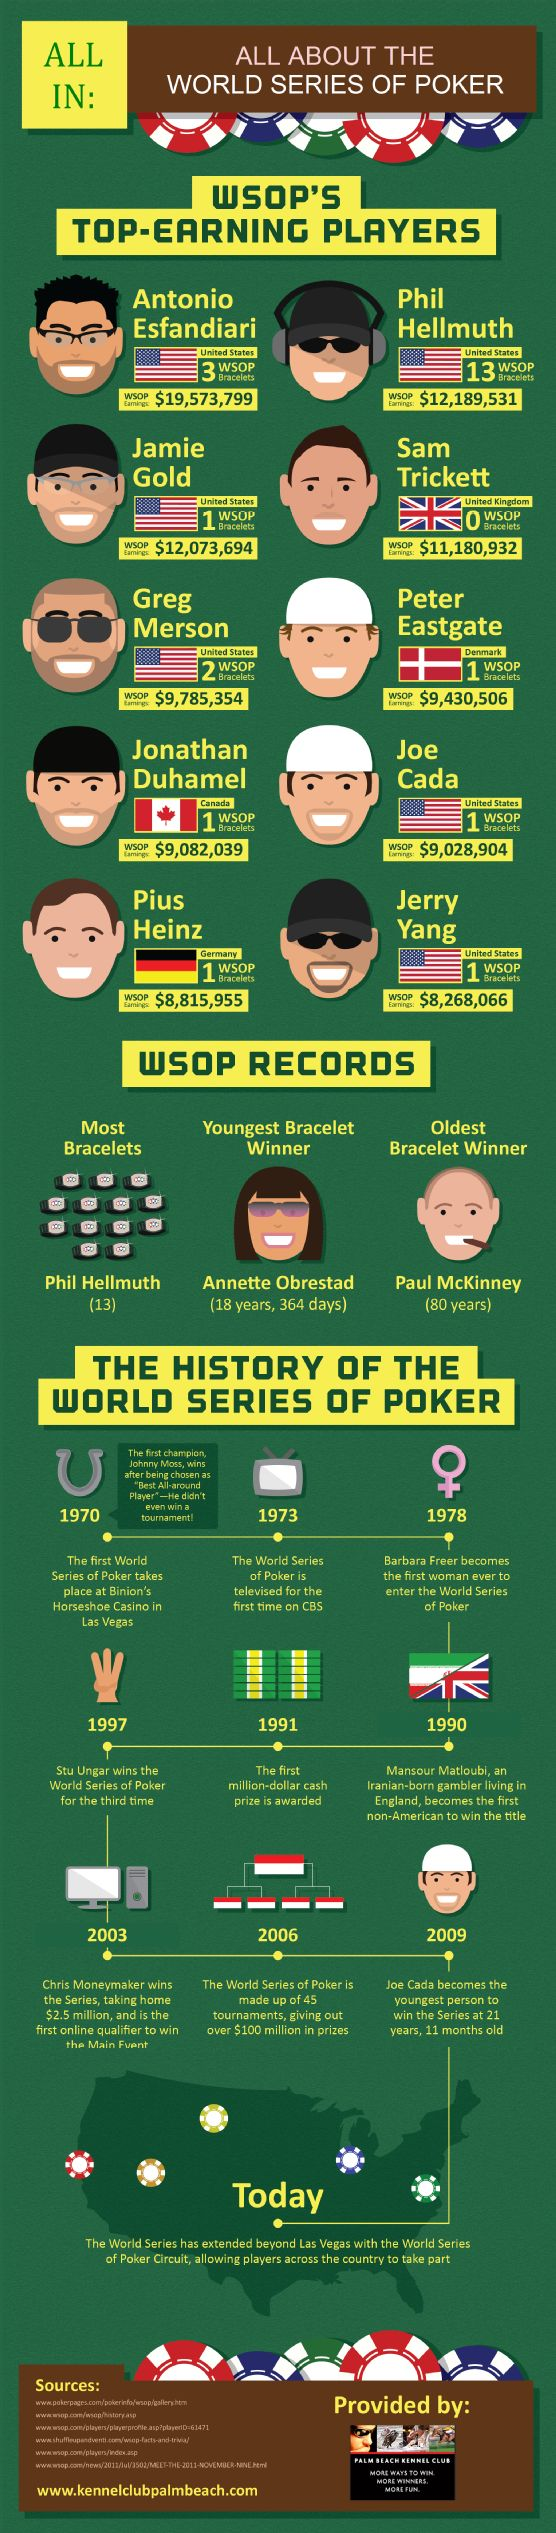 The top countries to win exciting prizes at World Series of Poker Include United Kingdom, United States, Germany, Canada and Denmark.